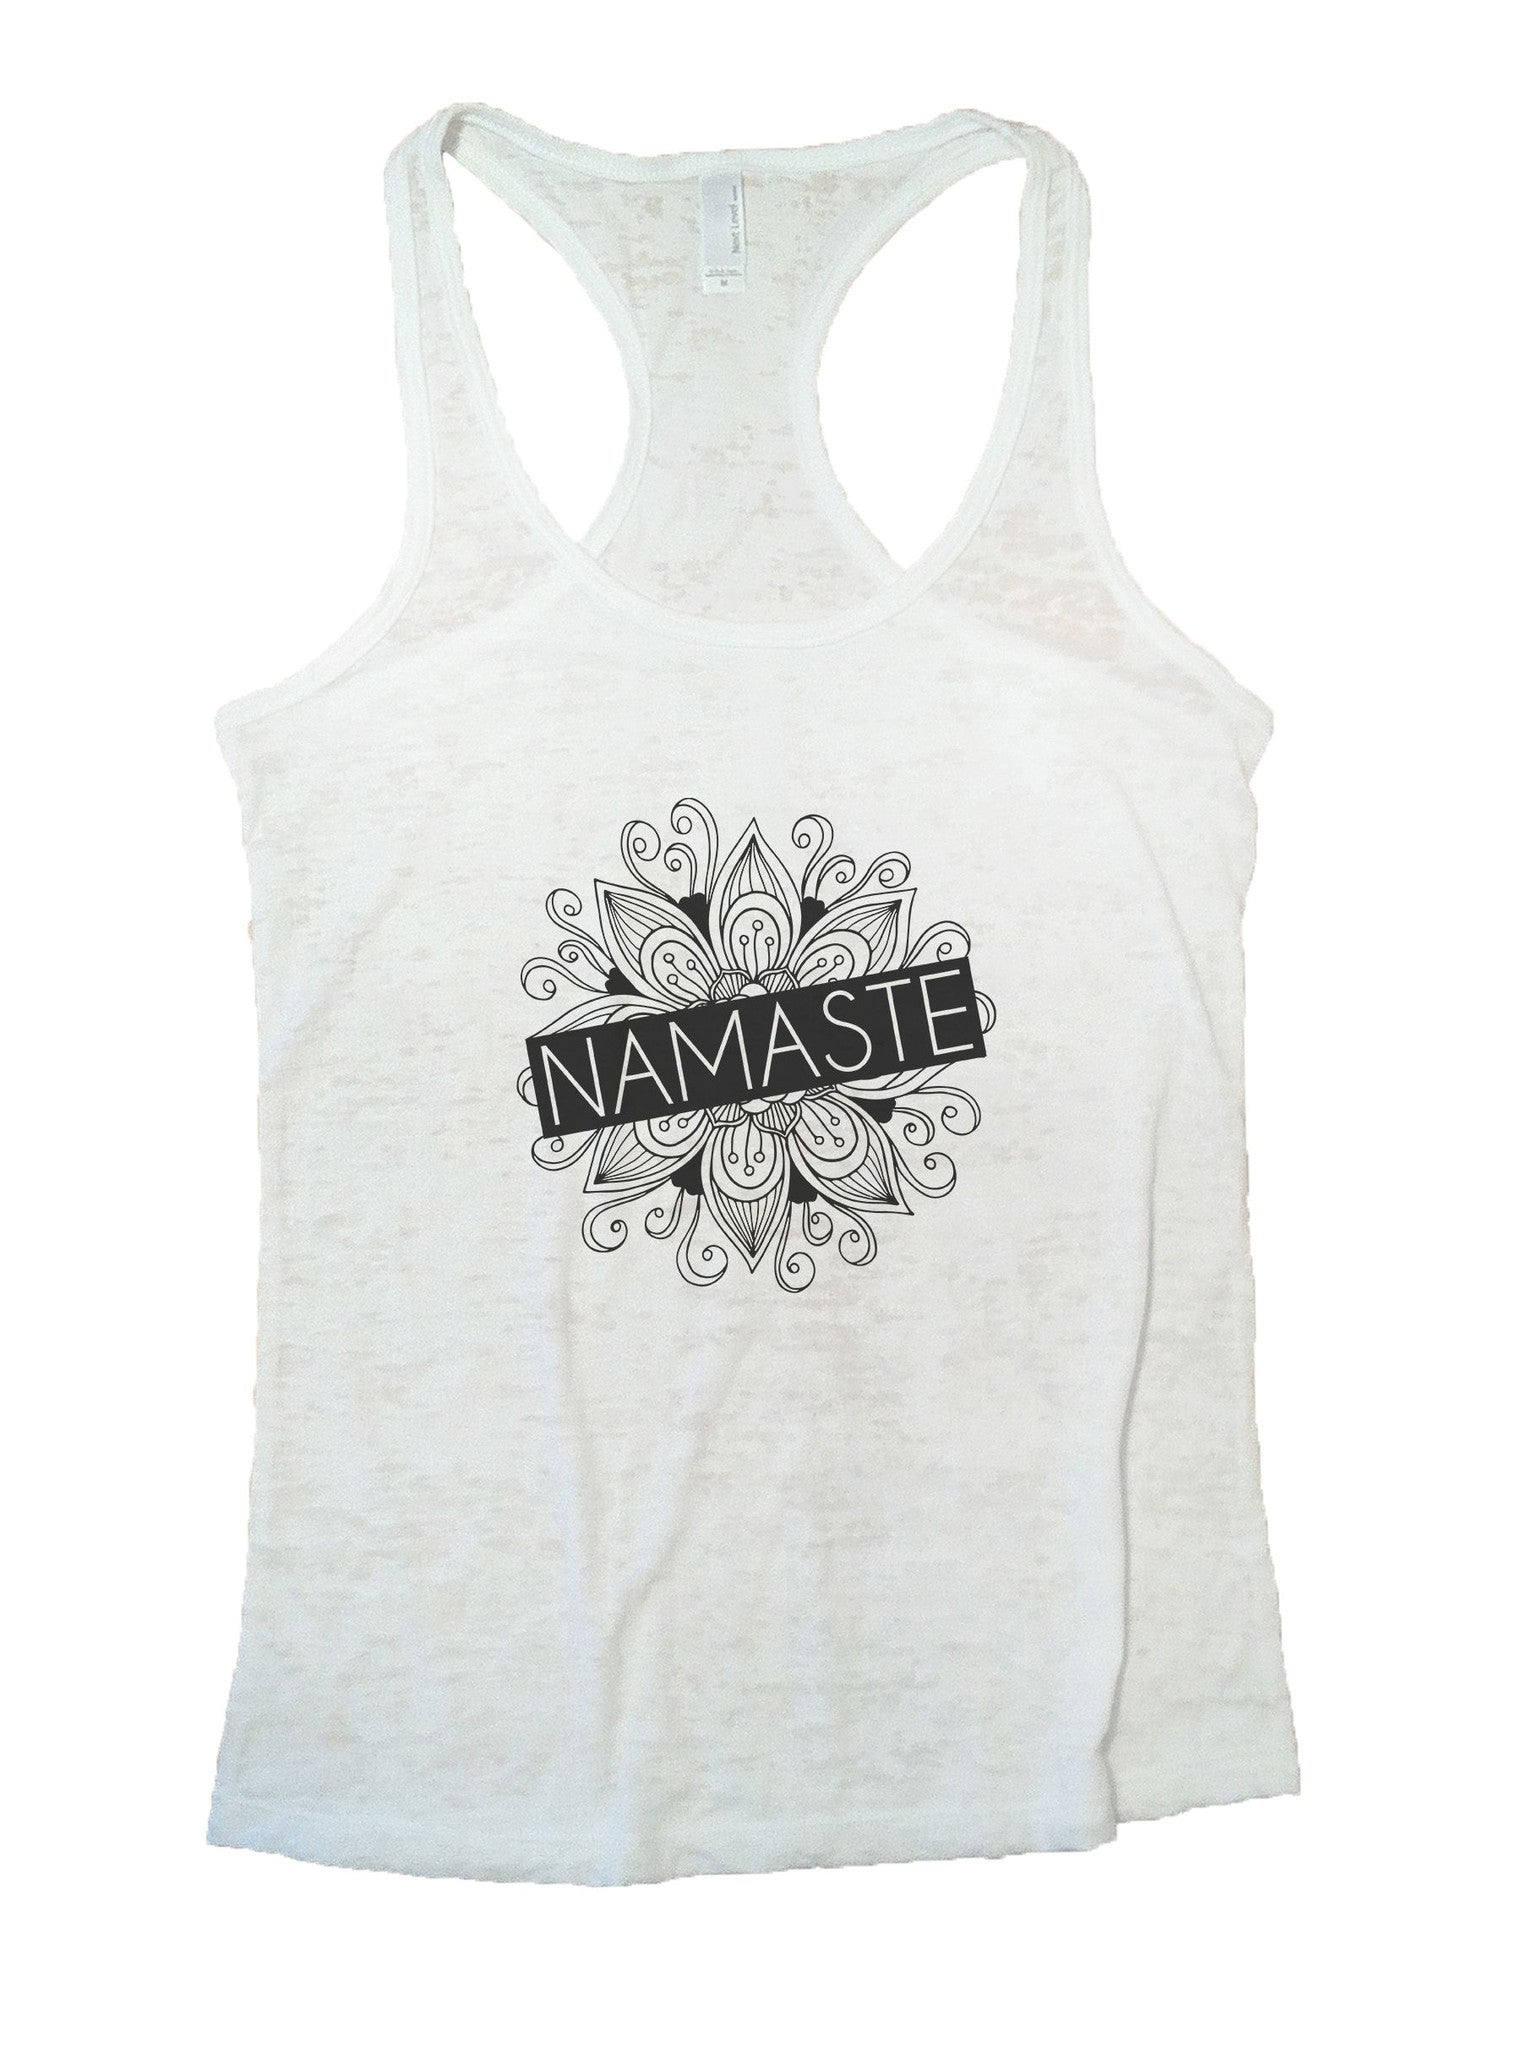 Namaste Burnout Tank Top By BurnoutTankTops.com - 1016 - Funny Shirts Tank Tops Burnouts and Triblends  - 6